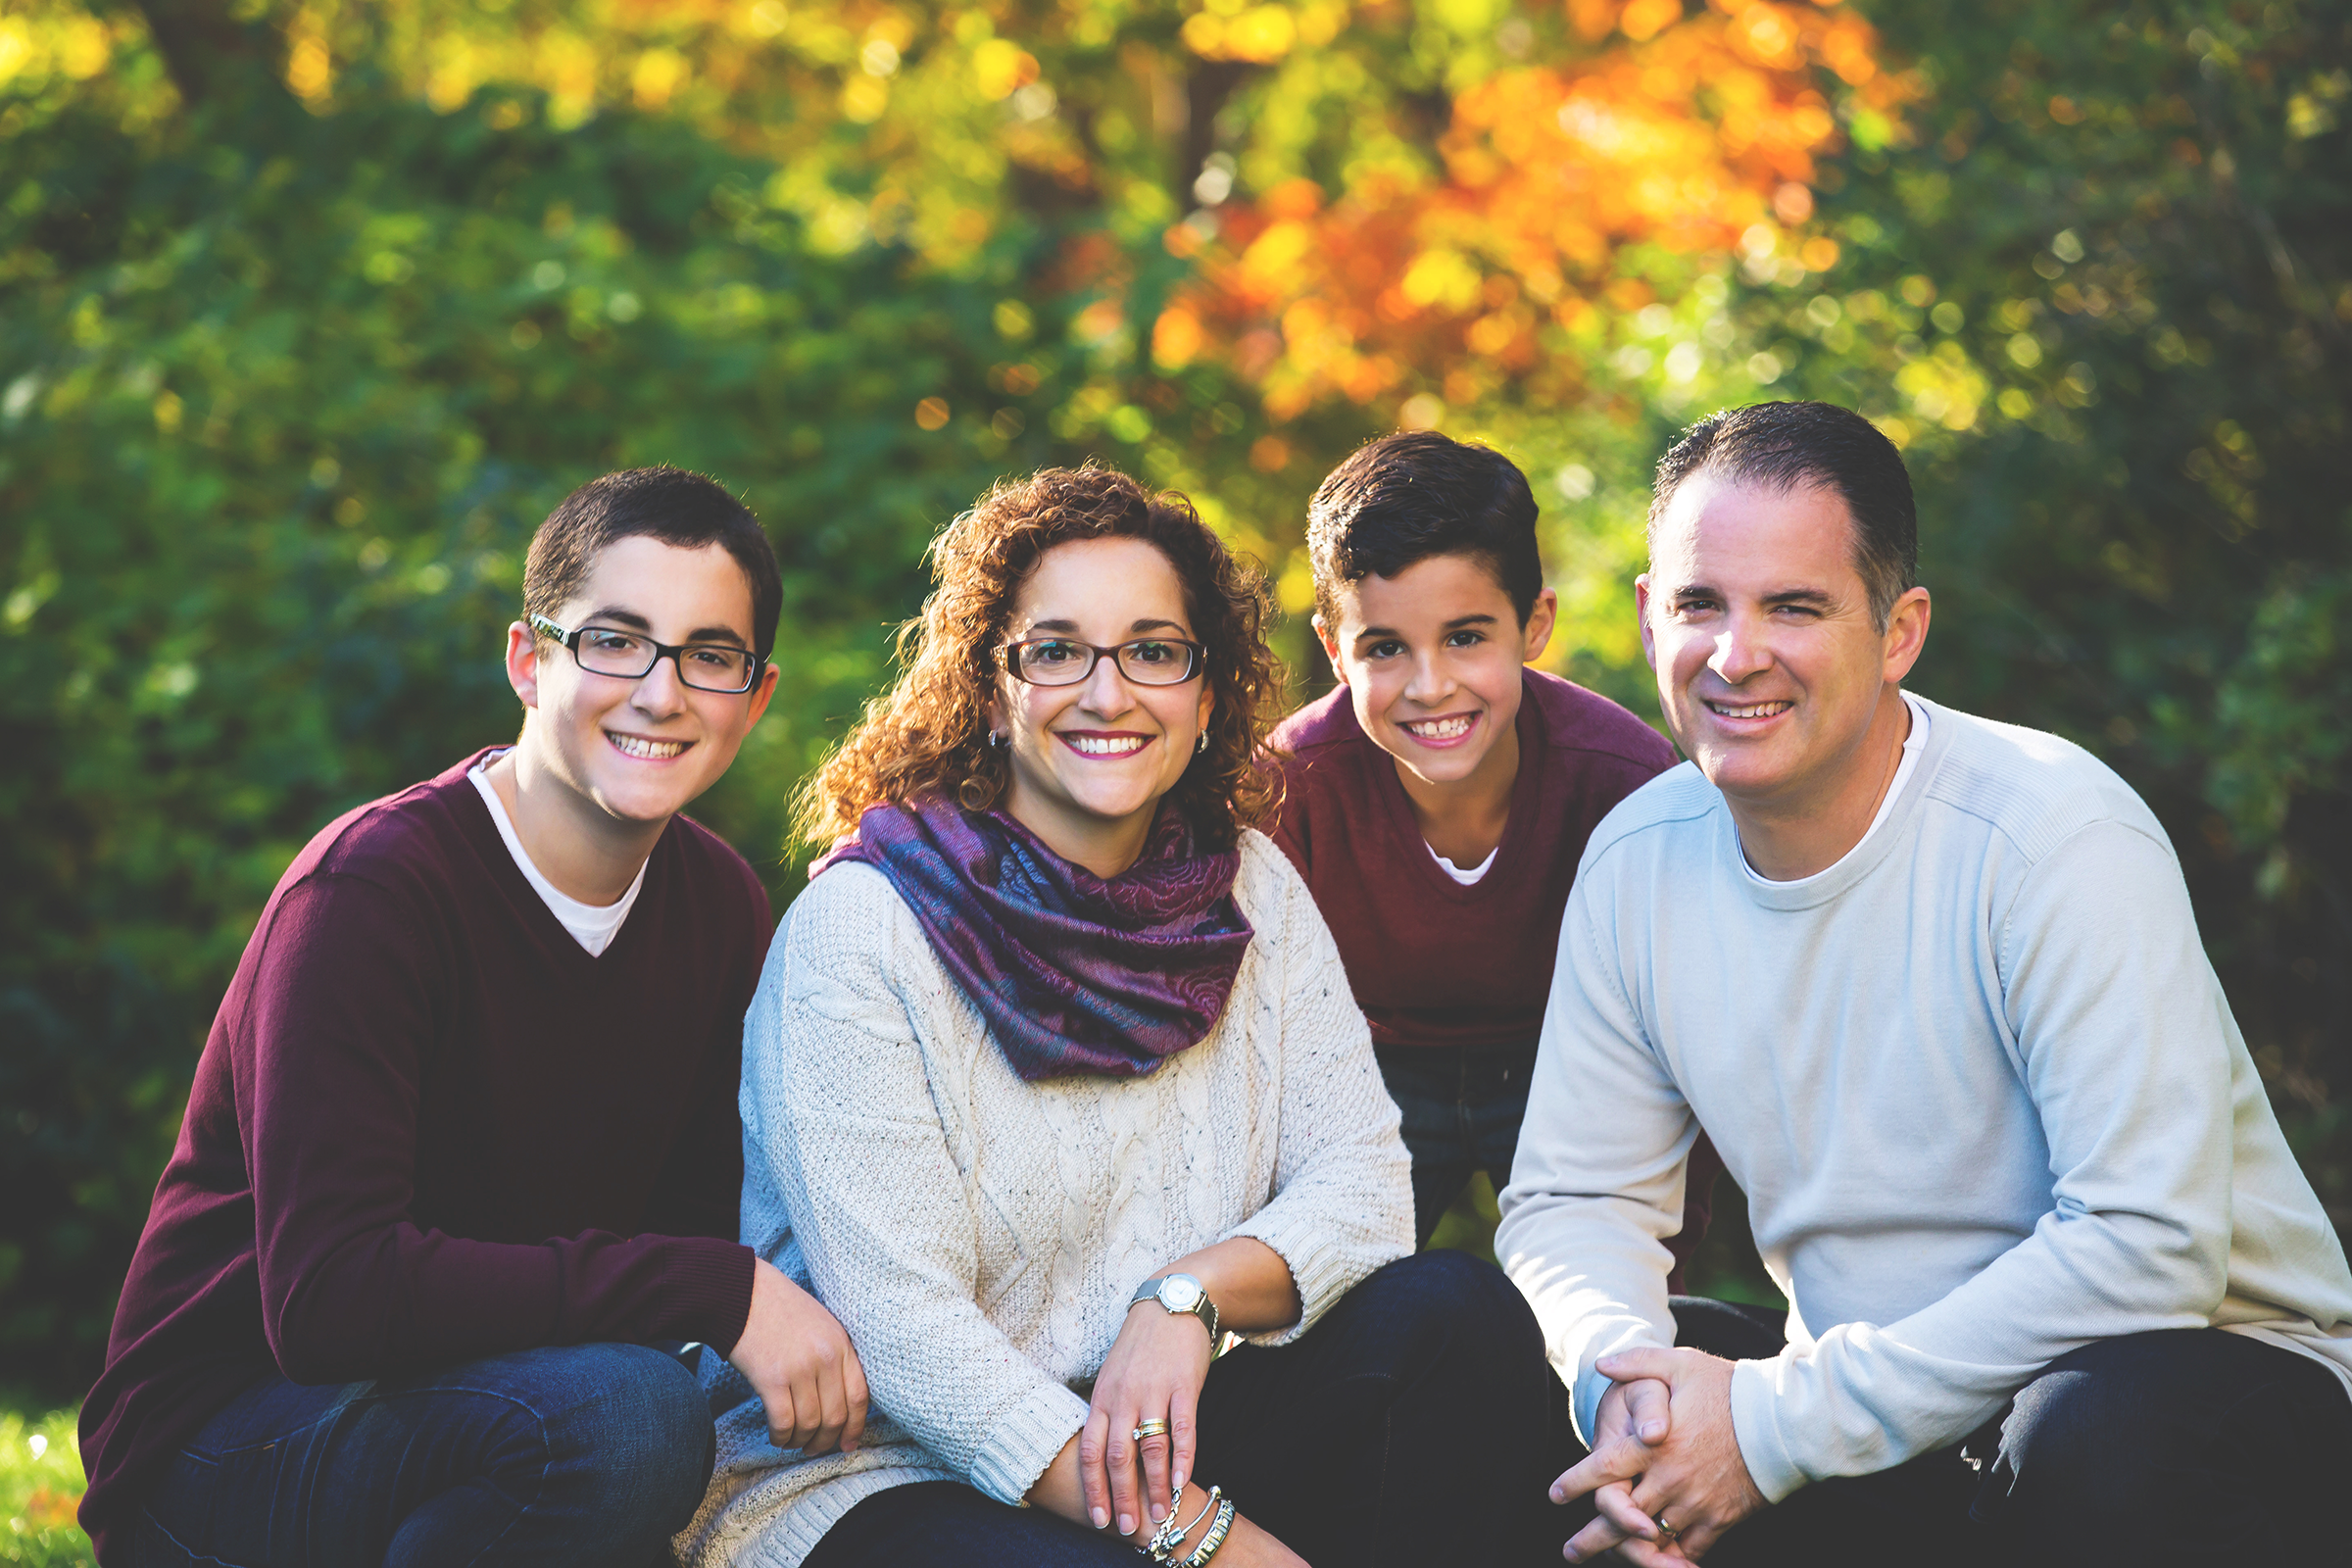 Family-Portraits-Hamilton-Stoney-Creek-Oakville-Burlington-Niagara-Photography-Moments-by-Lauren-Photographer-Lifestyle-Photo-Image8.png